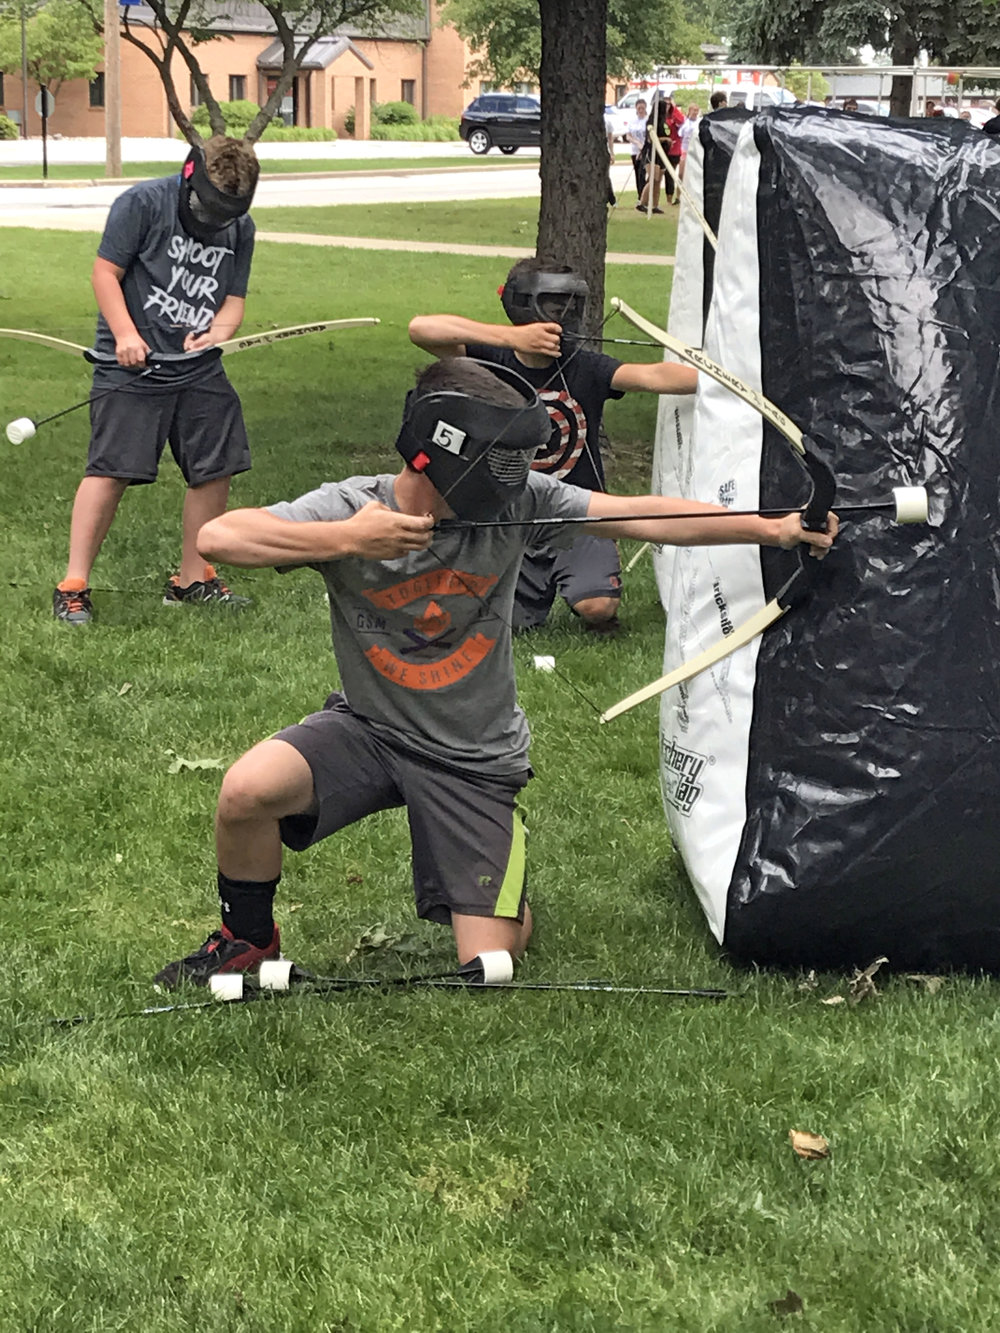 Archery_Tag_Outdoor_Inflatable_100(1).jpg